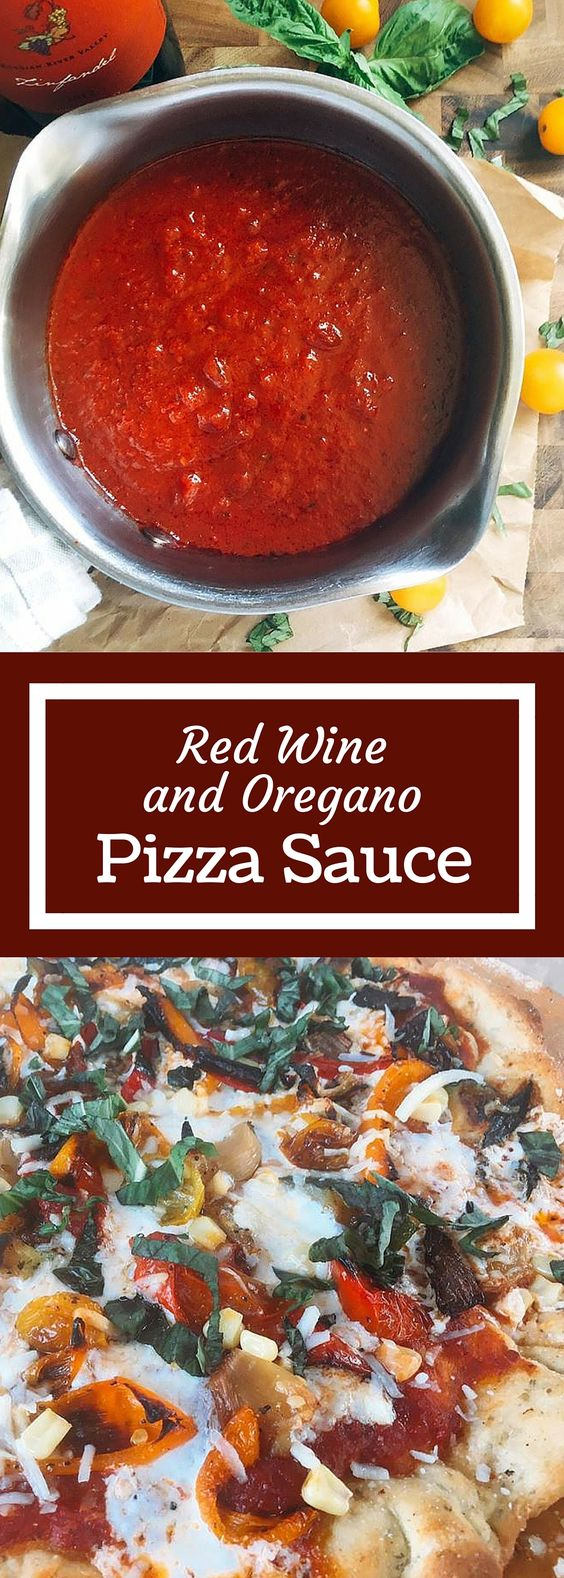 Red Wine Oregano Pizza Sauce | Recipe | Red Wines, Pizza and Sauces